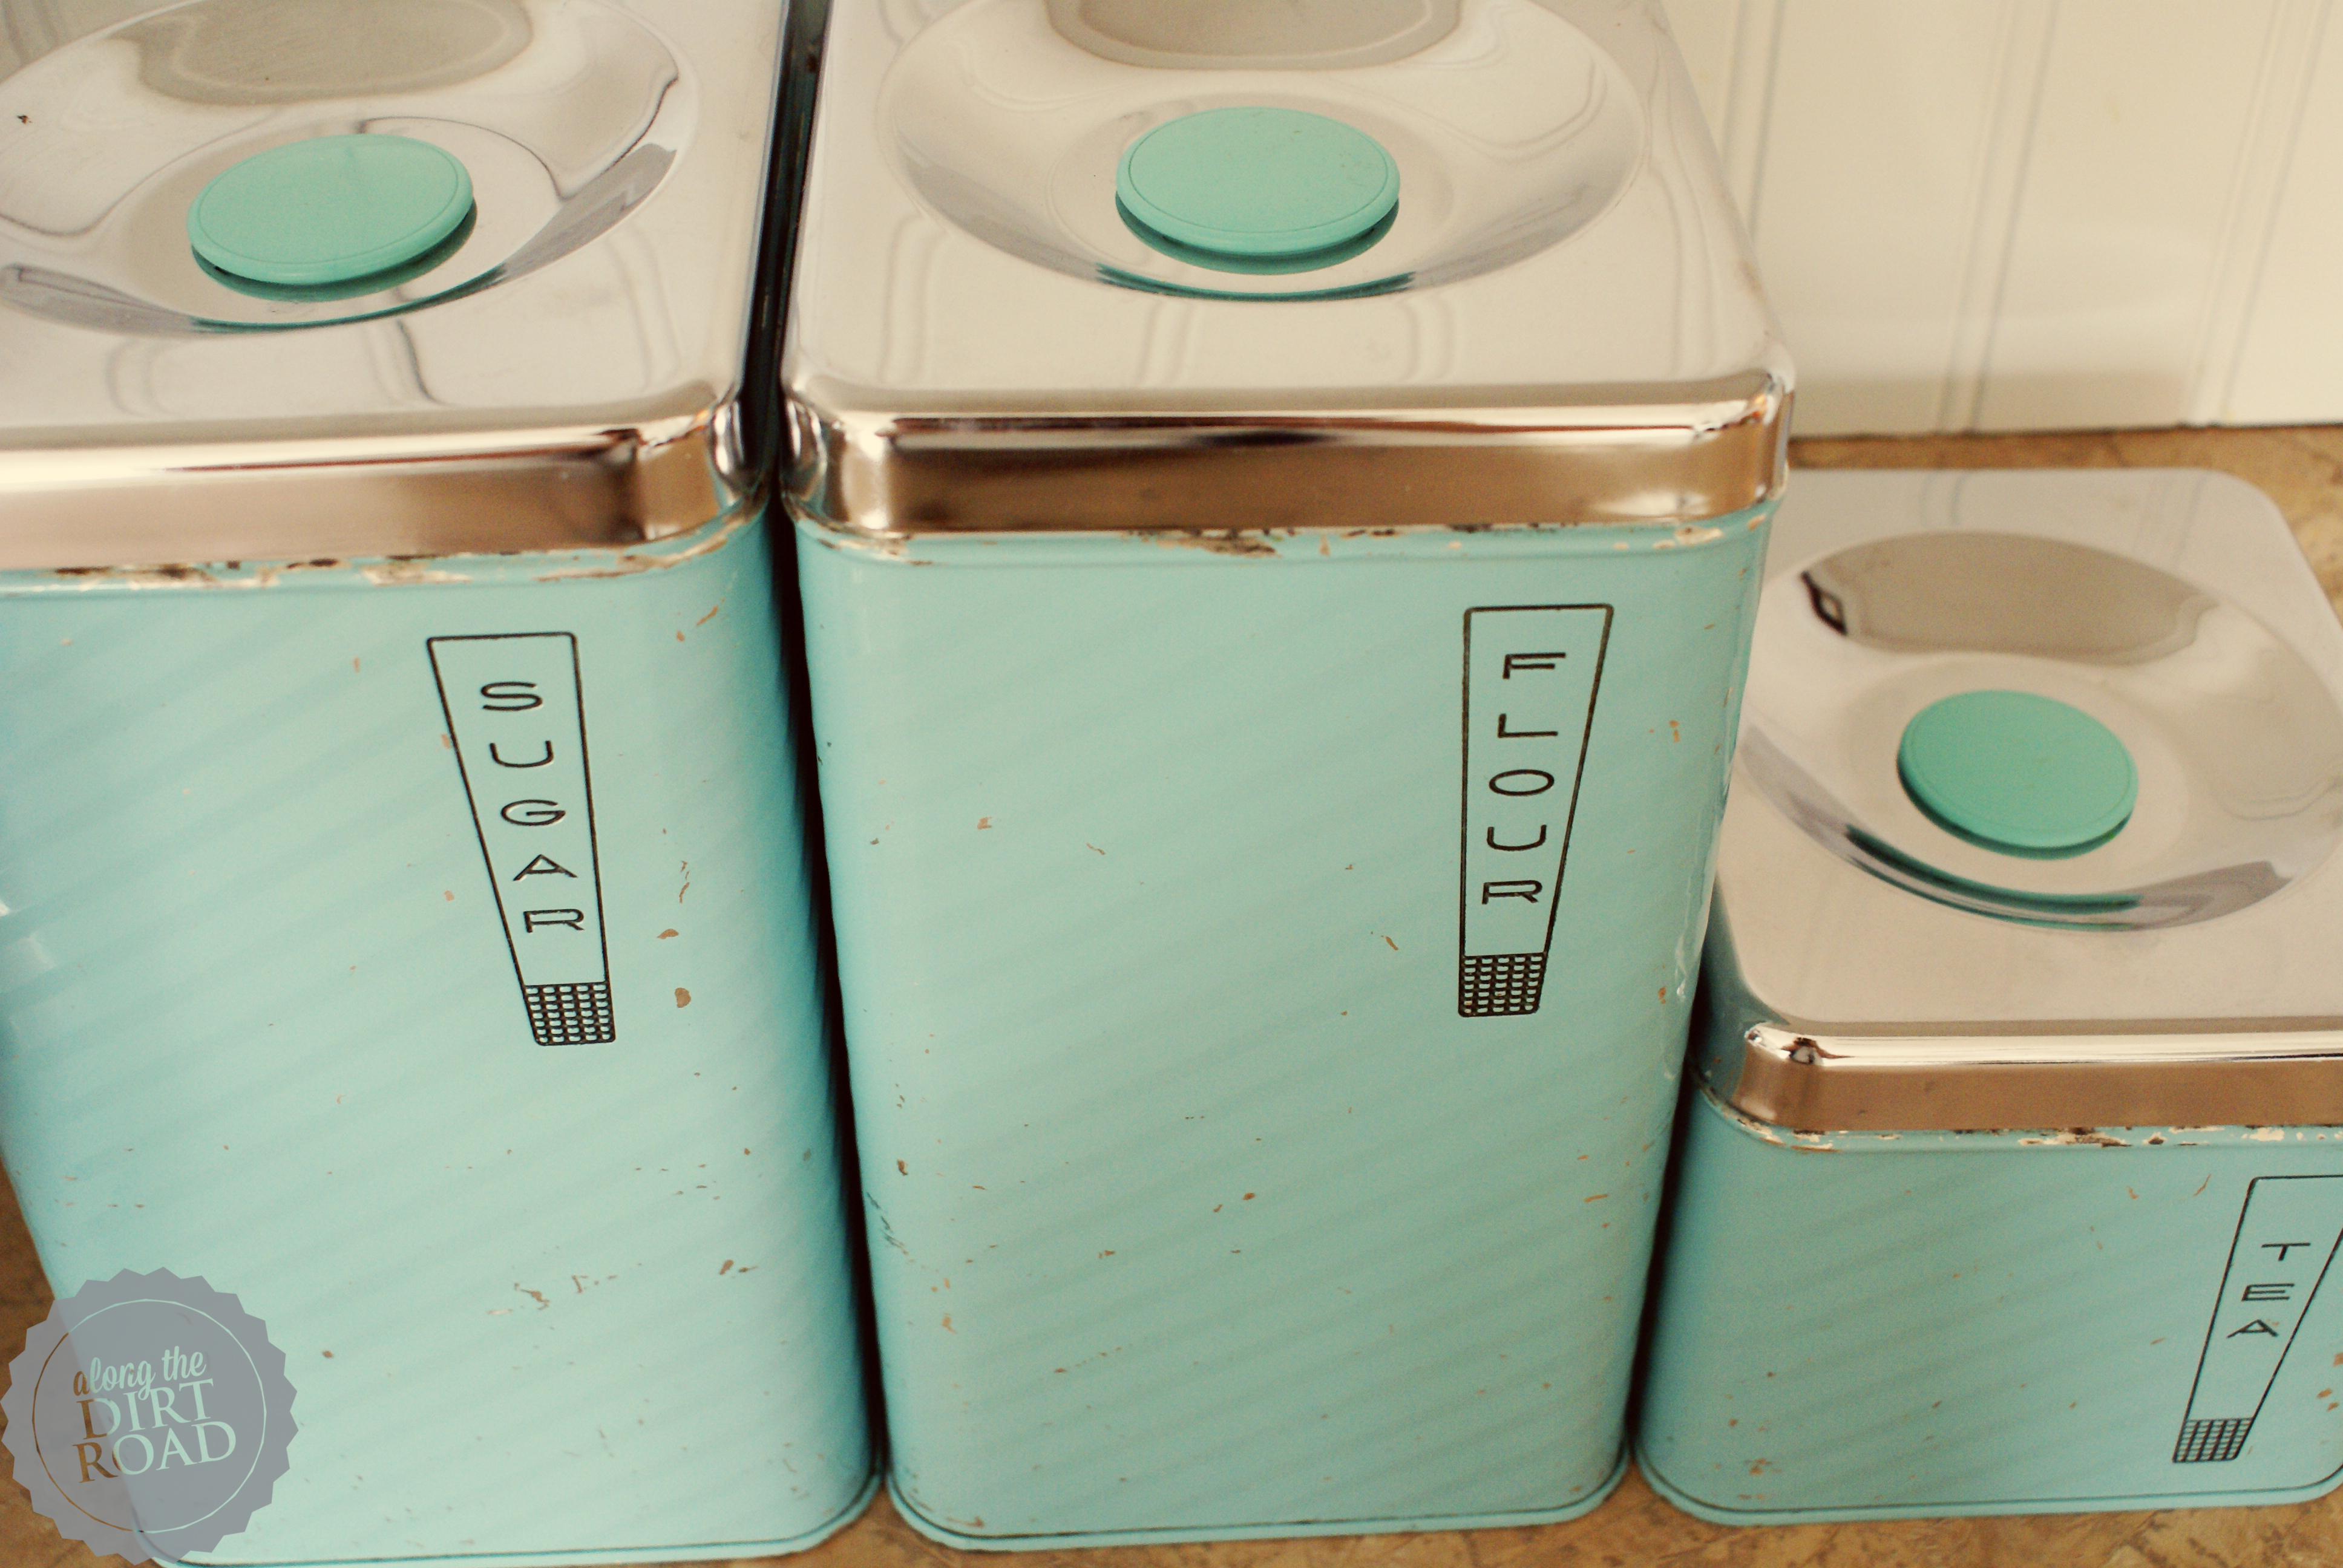 you enjoy gazing at the turquoise goodness today i cannot get enough of them when i find the perfect spoti will let you know i love our kitchen: stand kitchen dsc